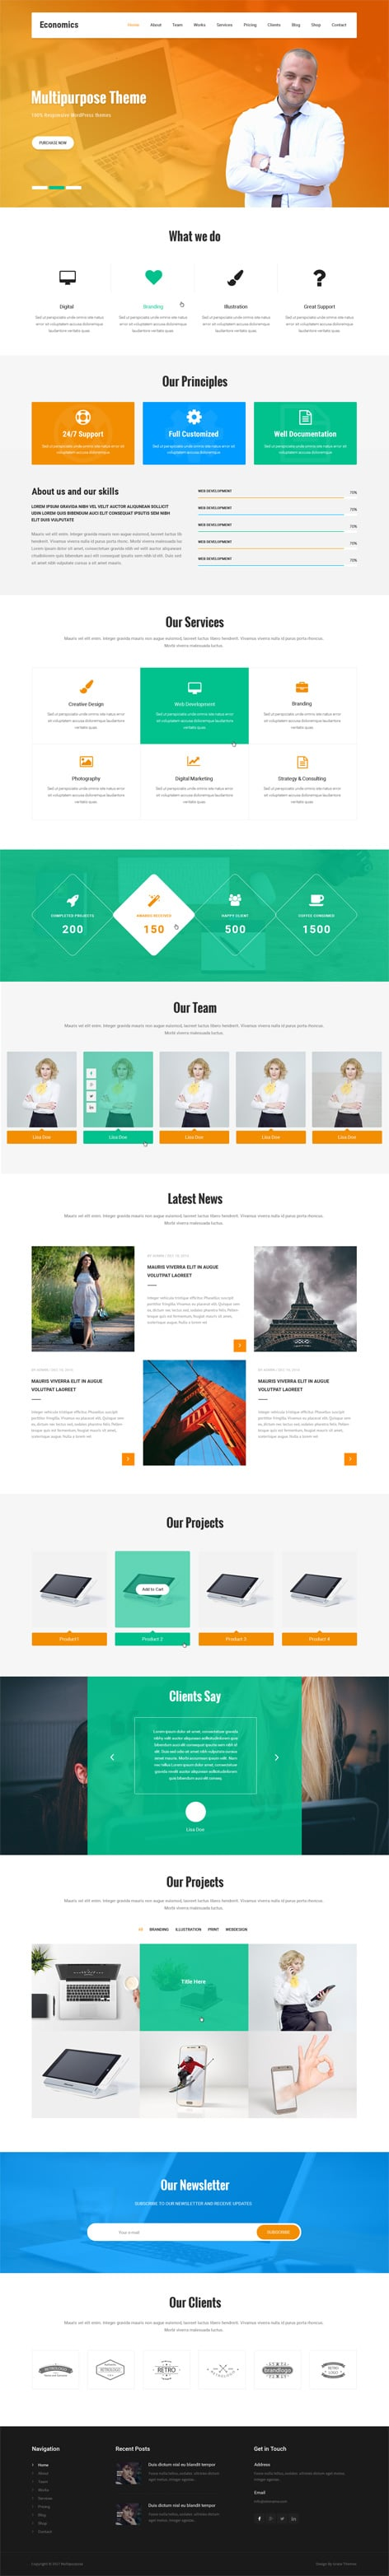 WordPress Website Templates And Themes By GraceThemes - Buy wordpress templates